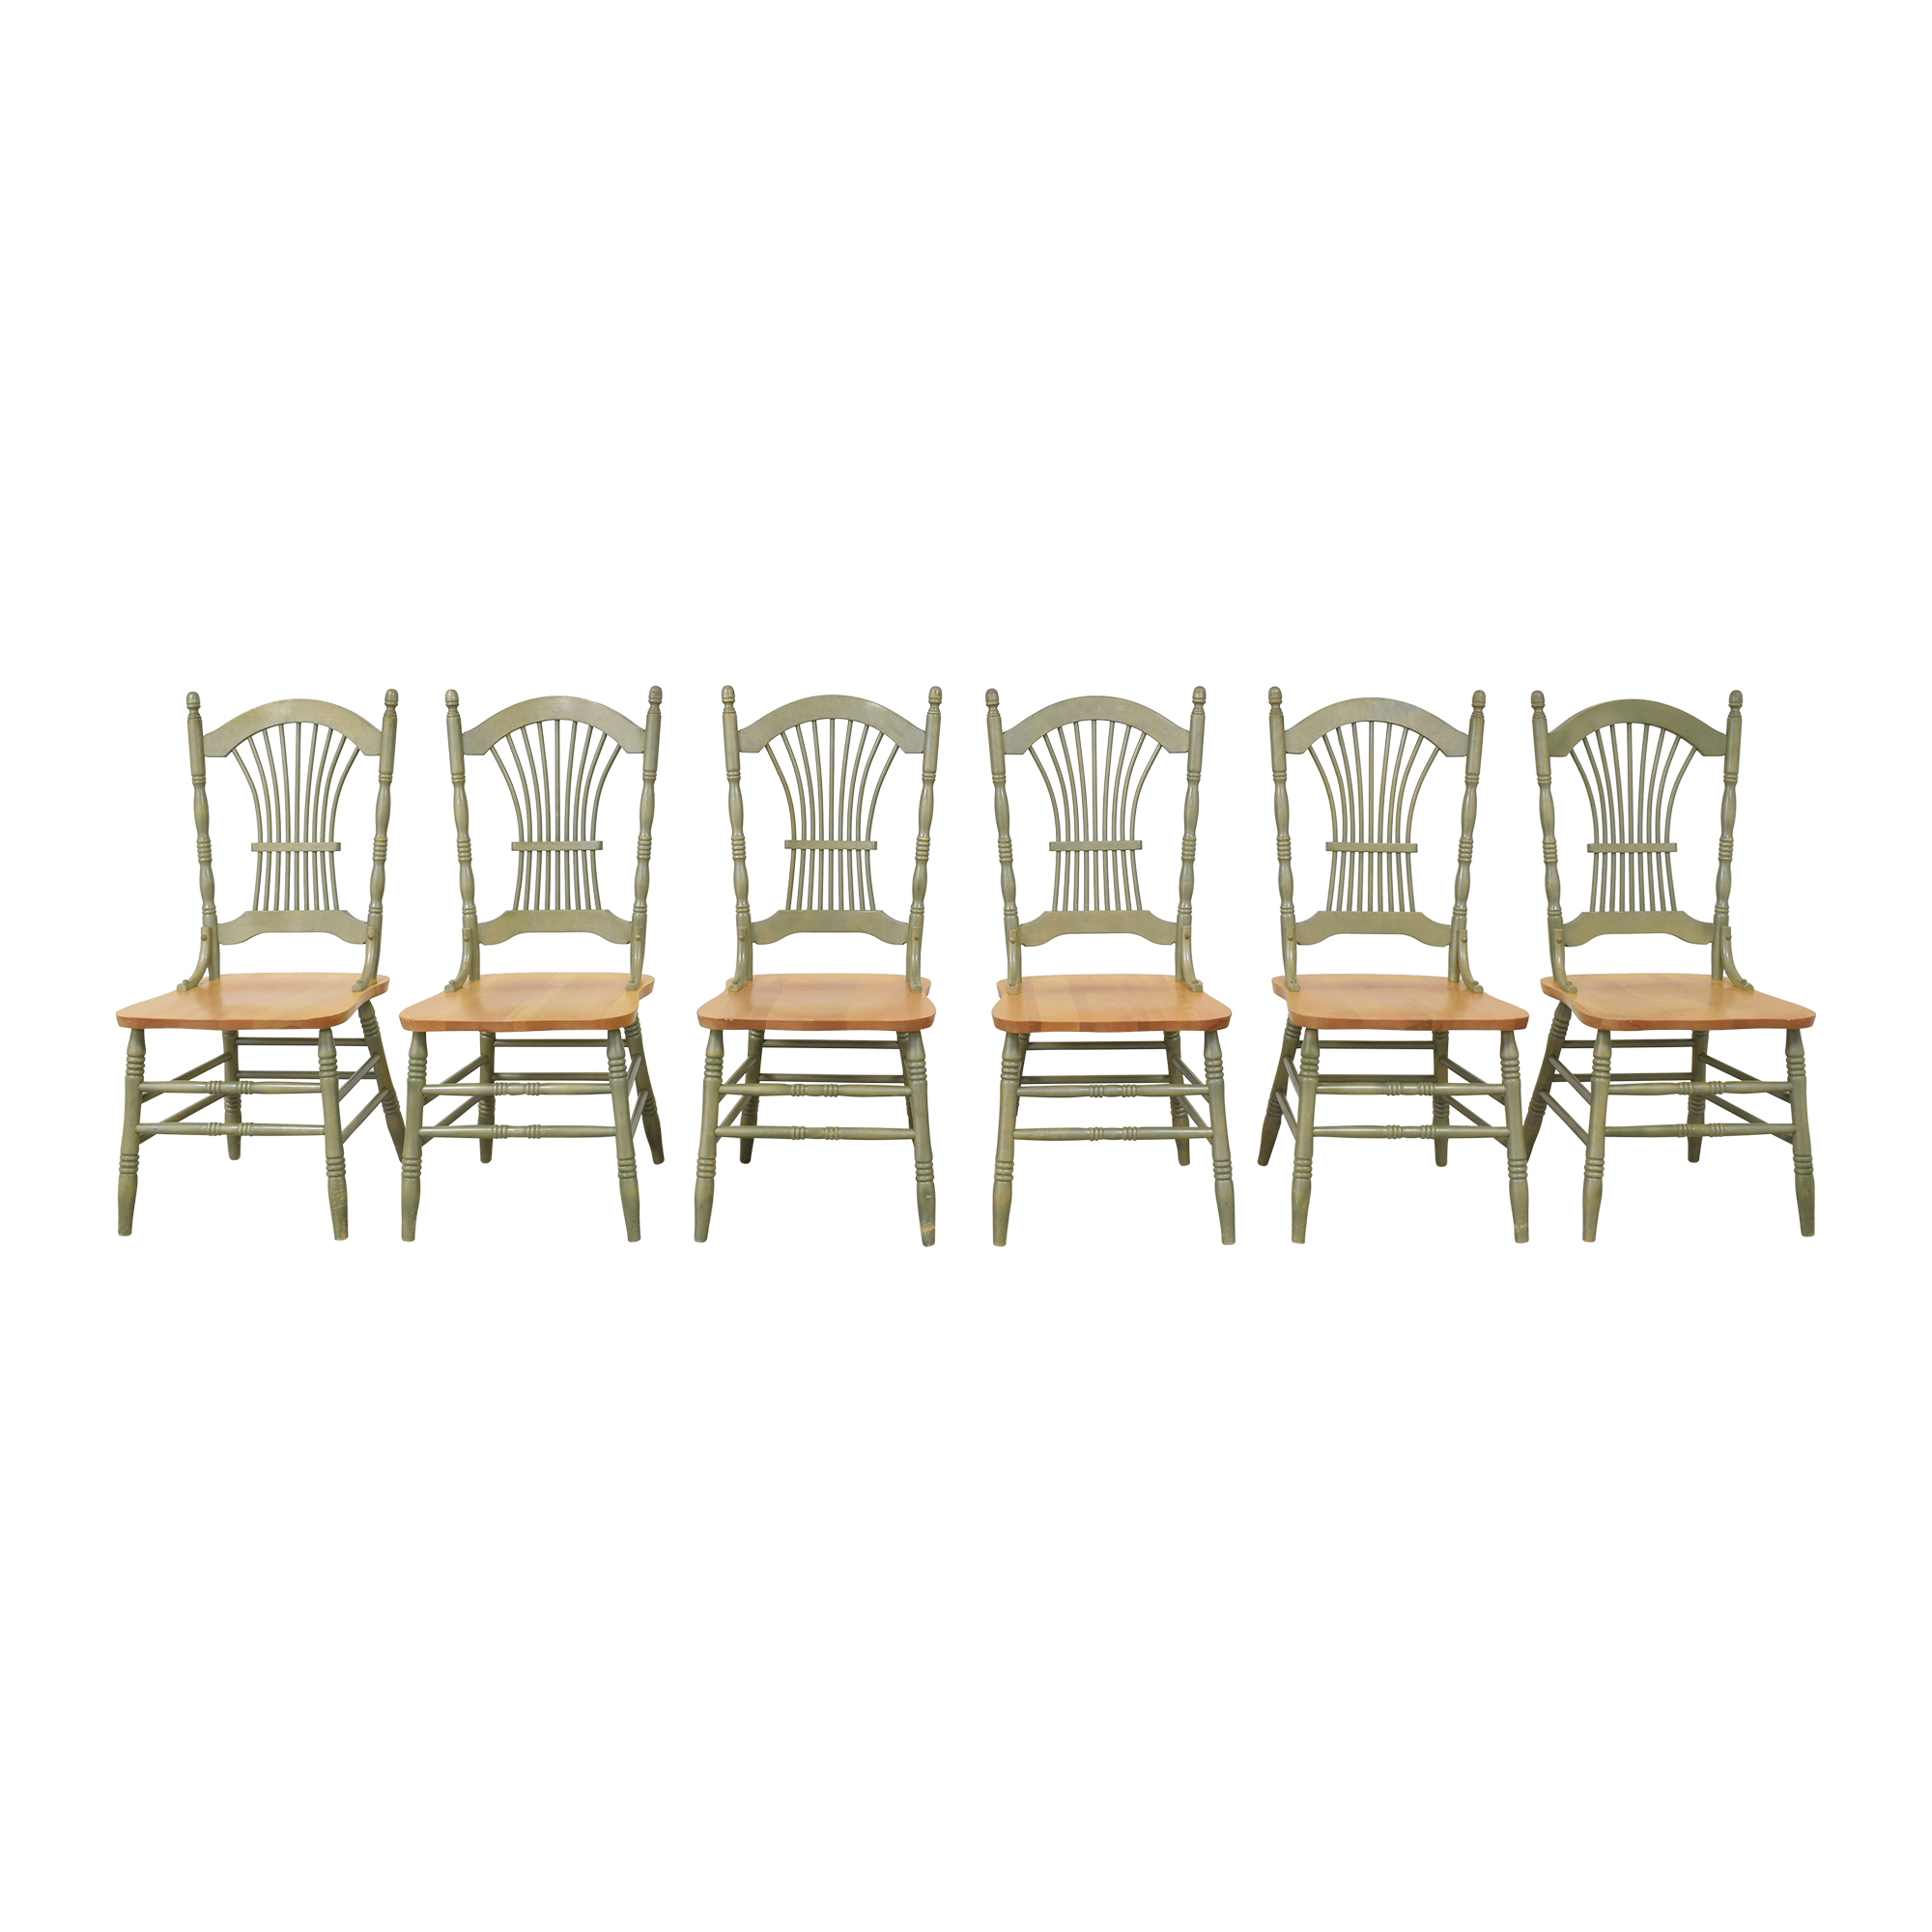 Canadel Canadel Sheaf Back Dining Chairs nyc